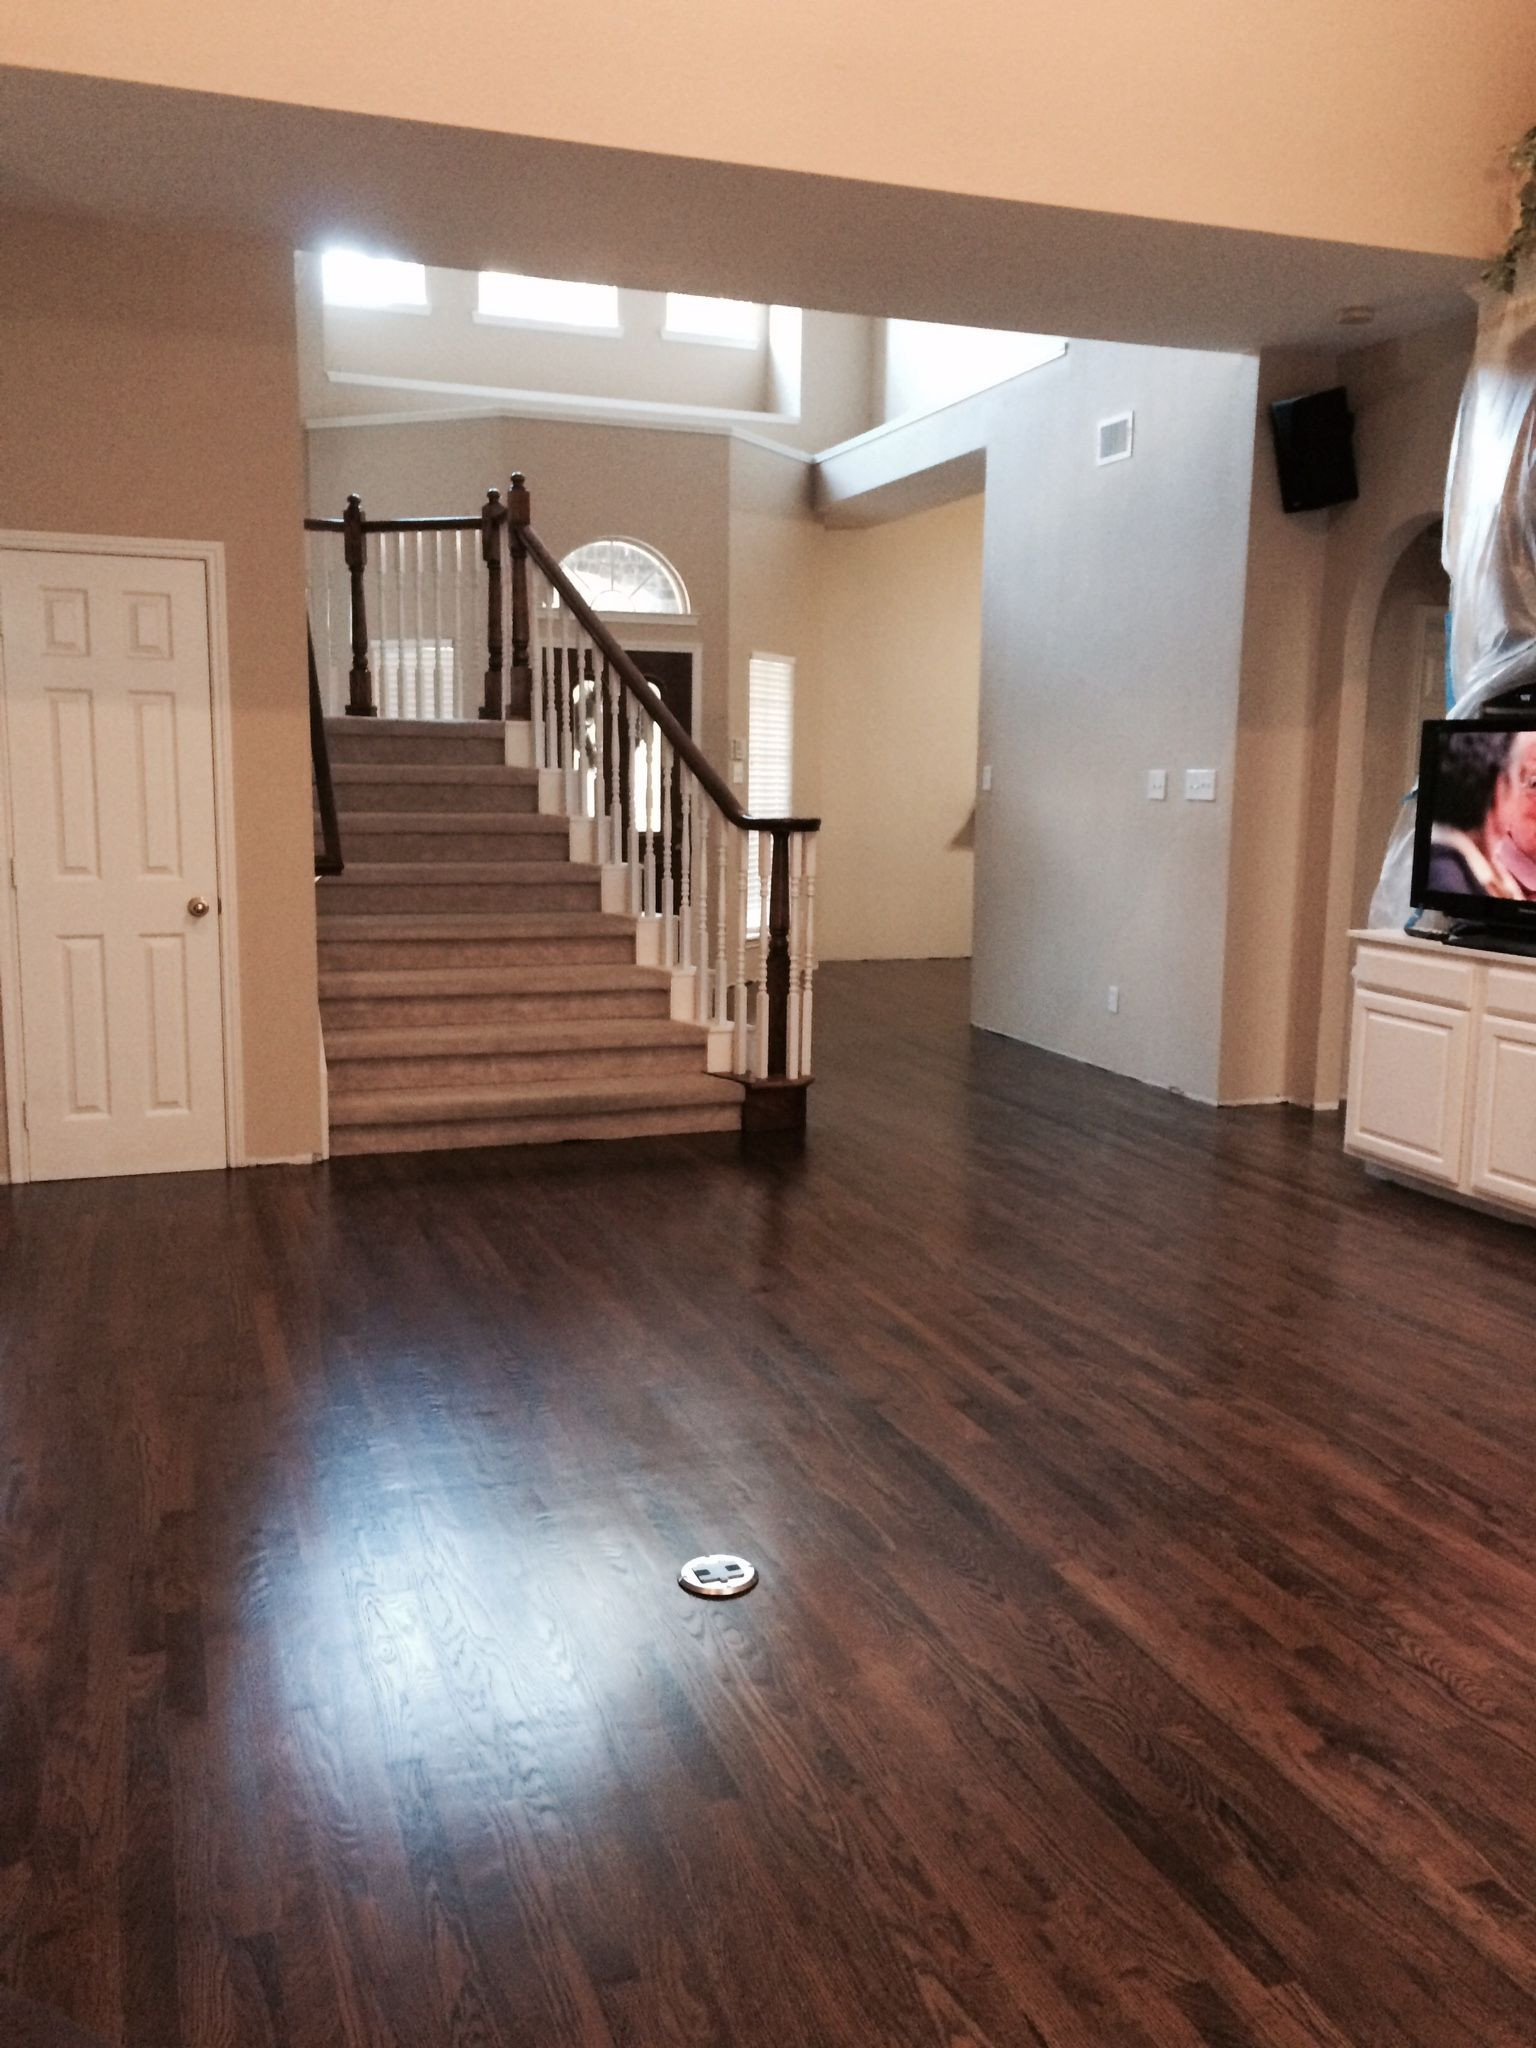 how to install hardwood flooring in multiple rooms of dark walnut stain on white oak hardwood remodel 1floors in 2018 throughout dark walnut stain on white oak hardwood walnut hardwood flooring hardwood floor stain colors